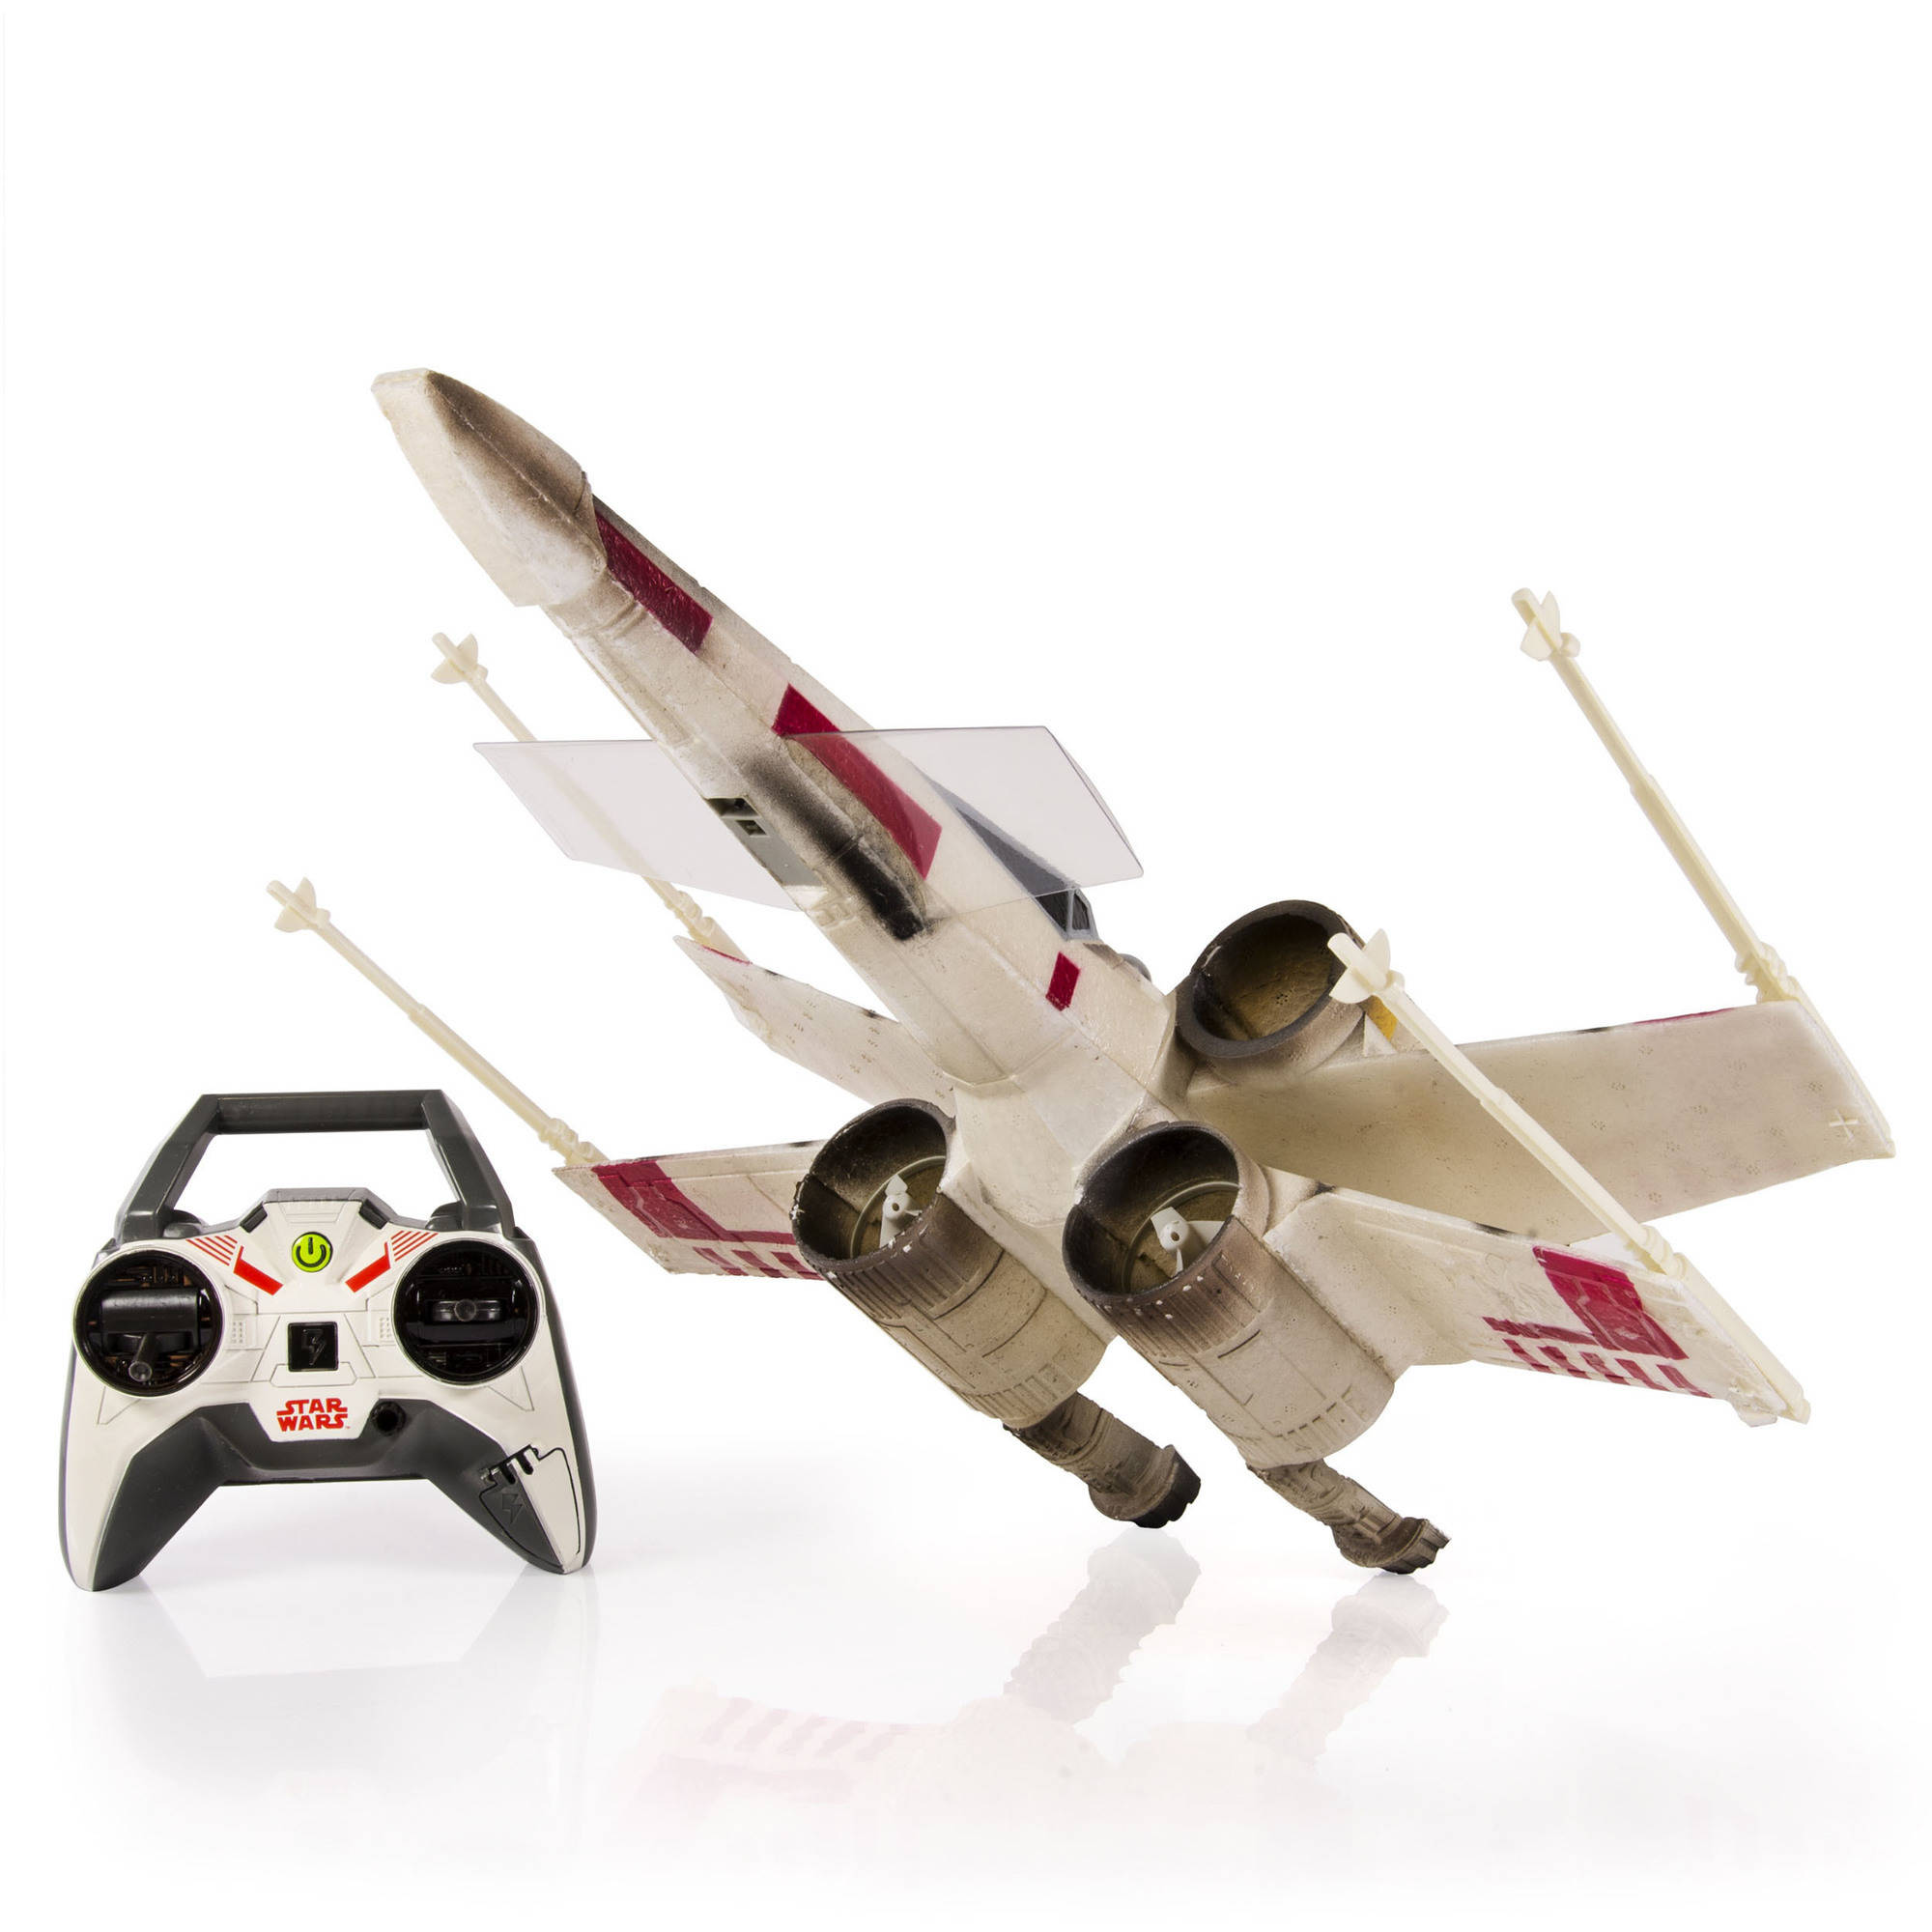 Air Hogs Star Wars Remote Control X-Wing Starfighter by DONG GUAN LAM SUN PLASTIC PRODUCTS CO.,LTD